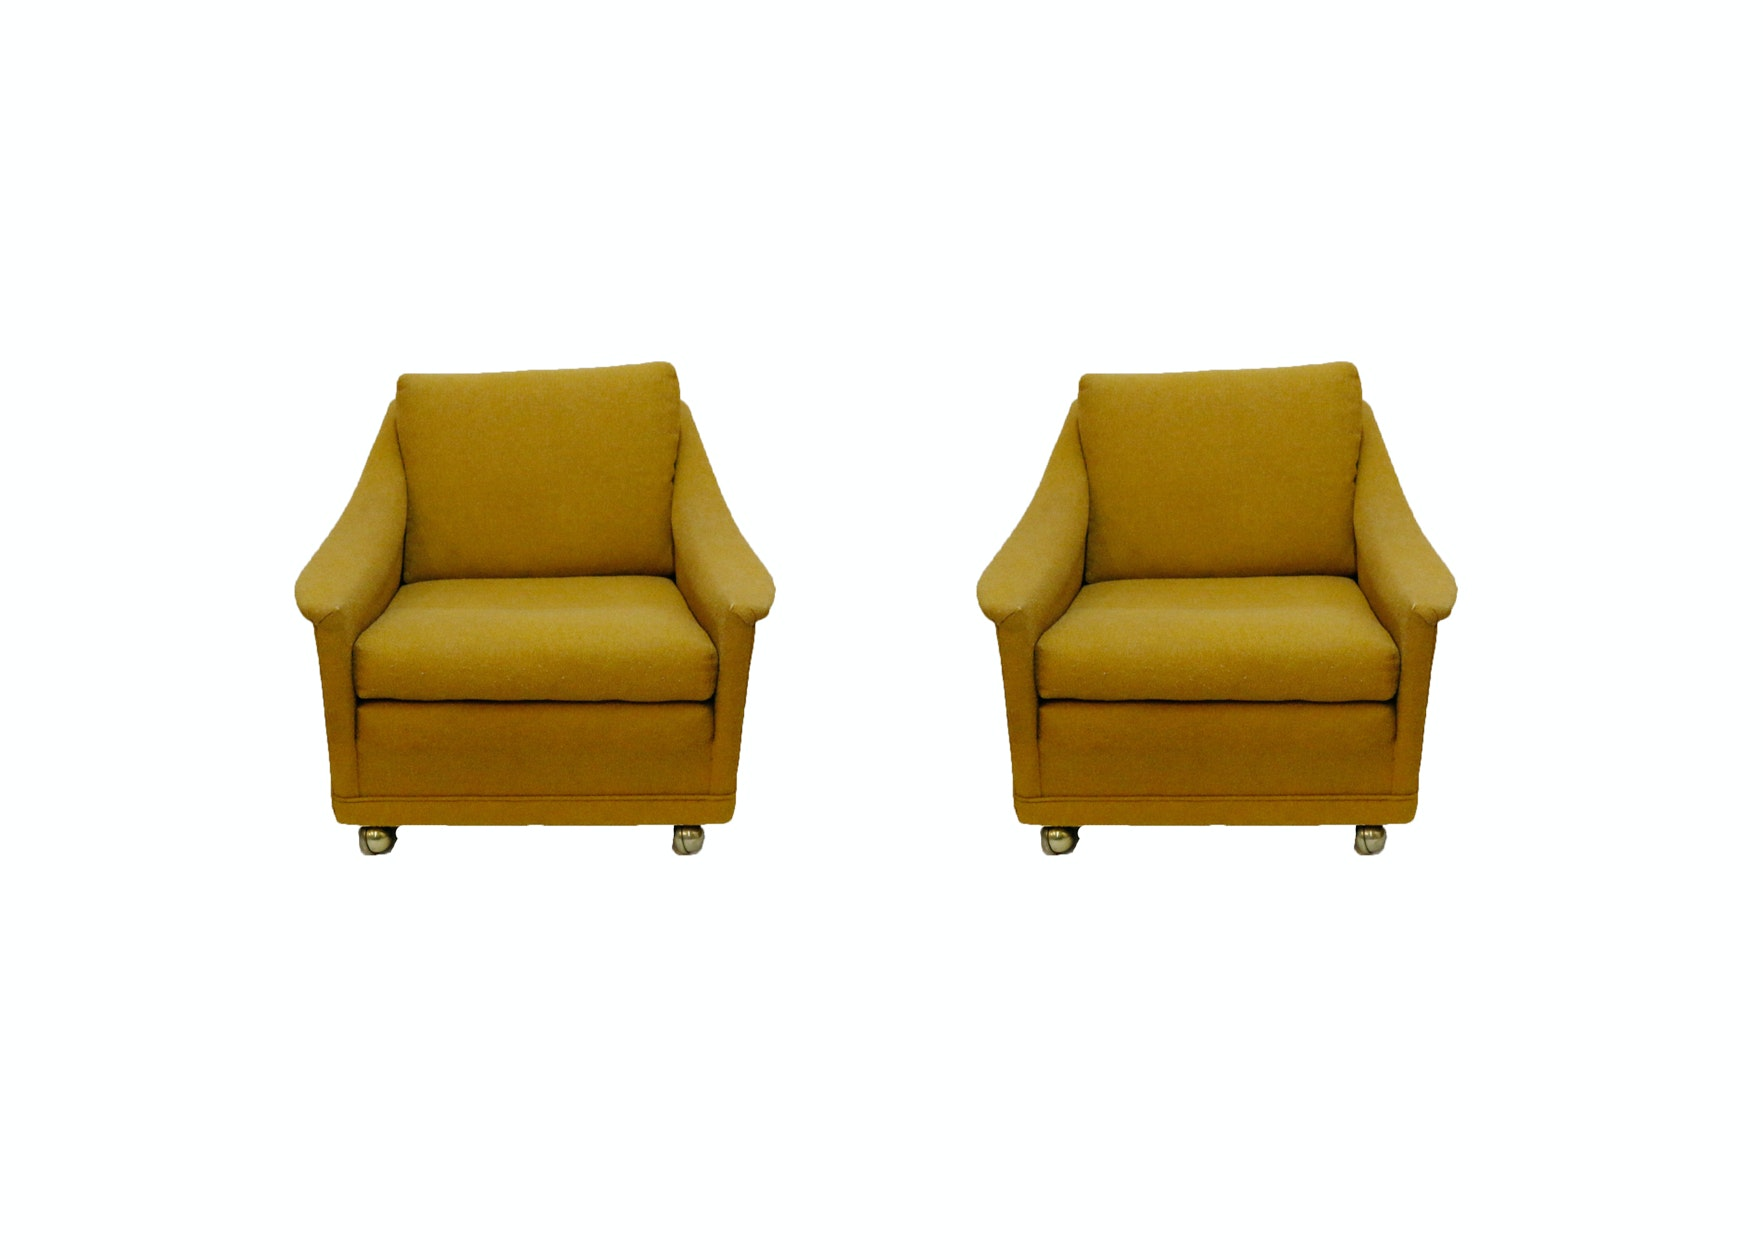 Pair of Vintage Goldenrod Armchairs